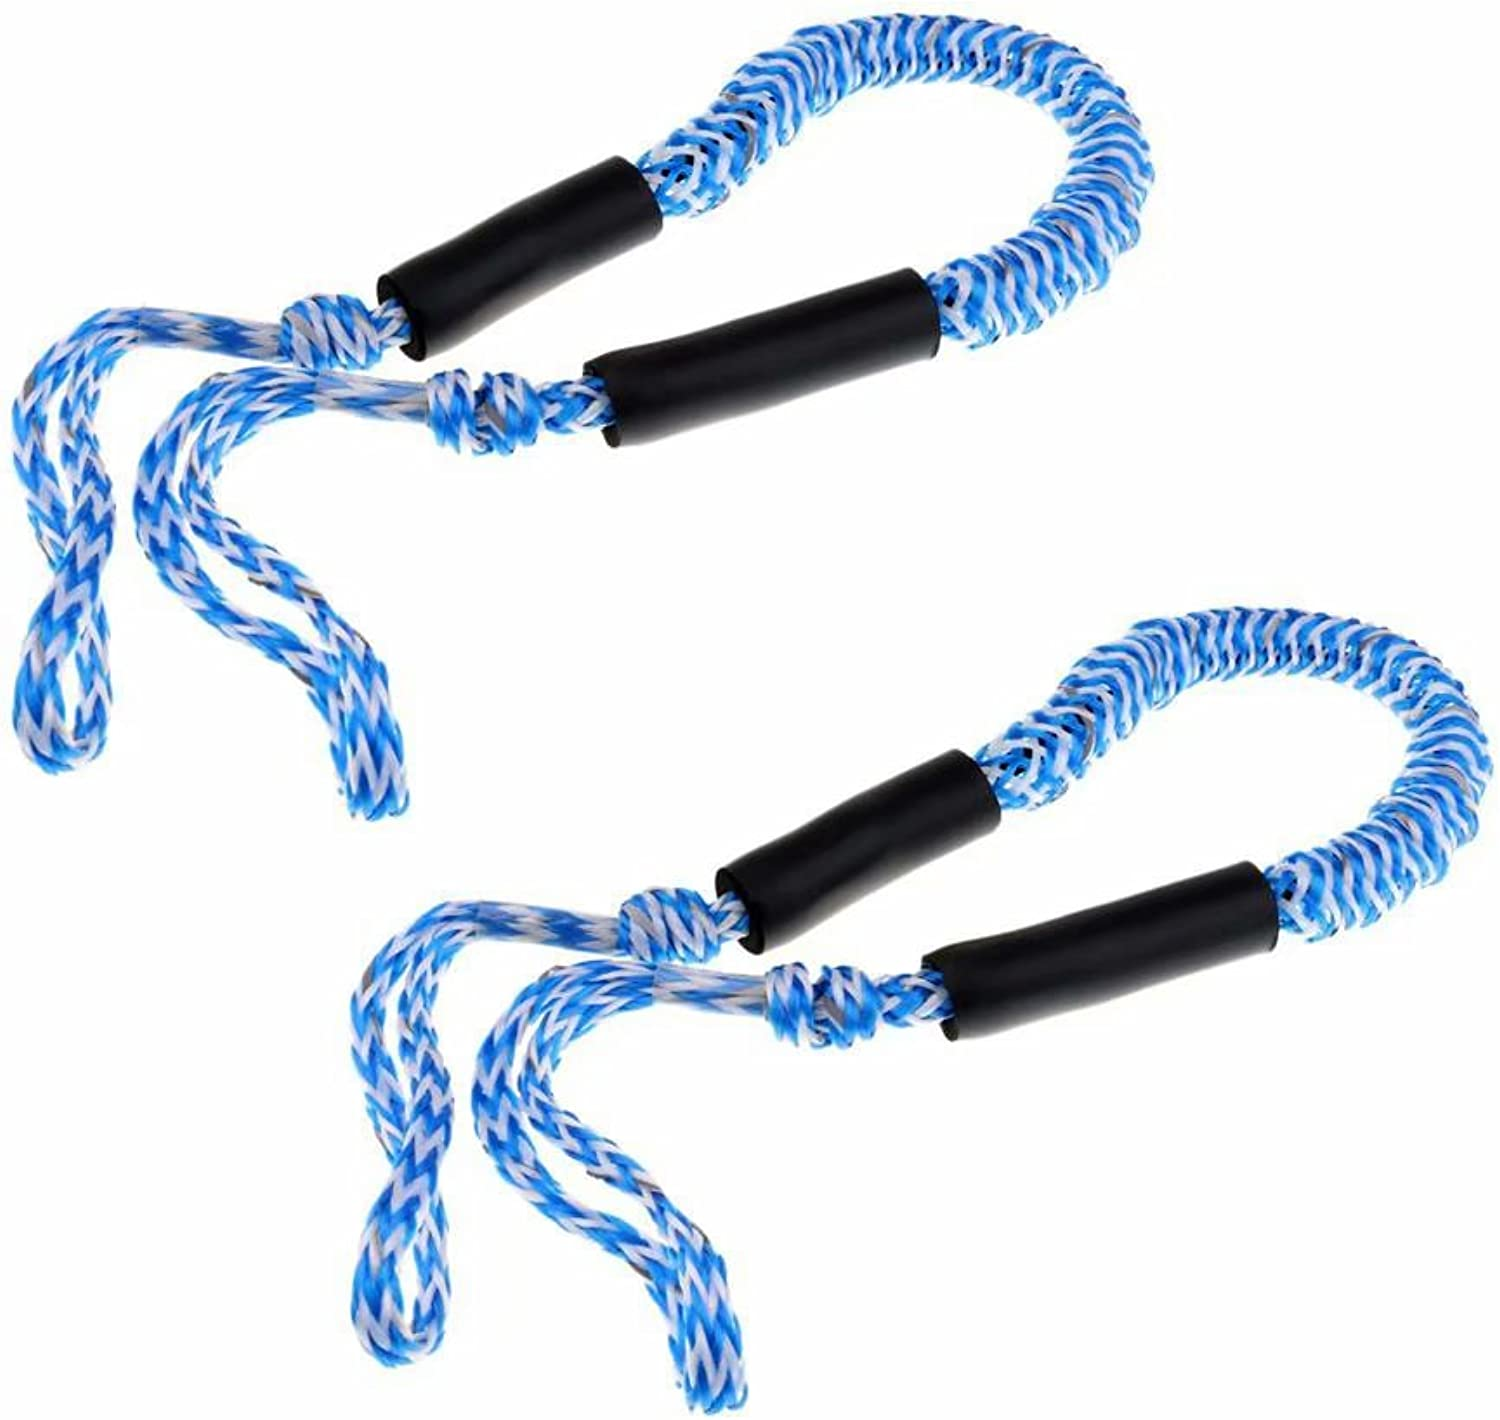 Jranter Bungee Dock Line Mooring Rope for Boat 3.5 ft 2 Pack